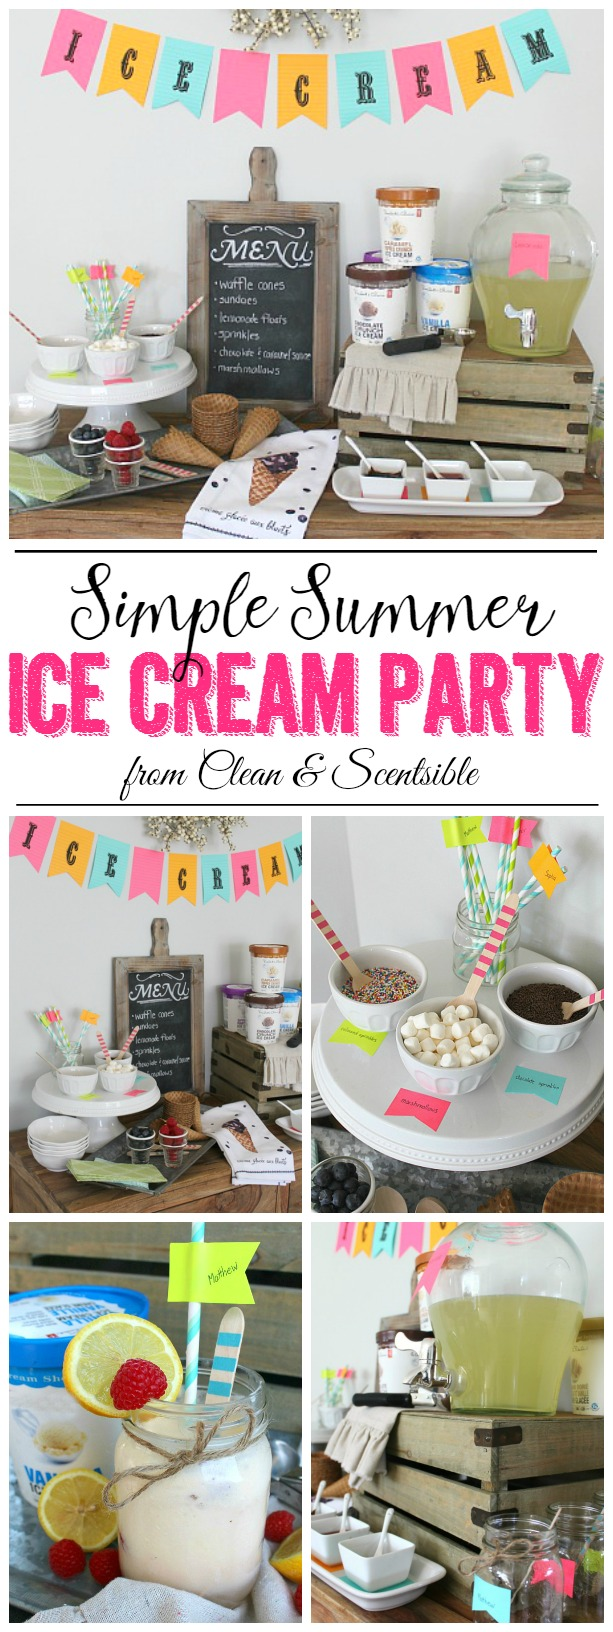 Fun ideas for a simple summer ice cream party!